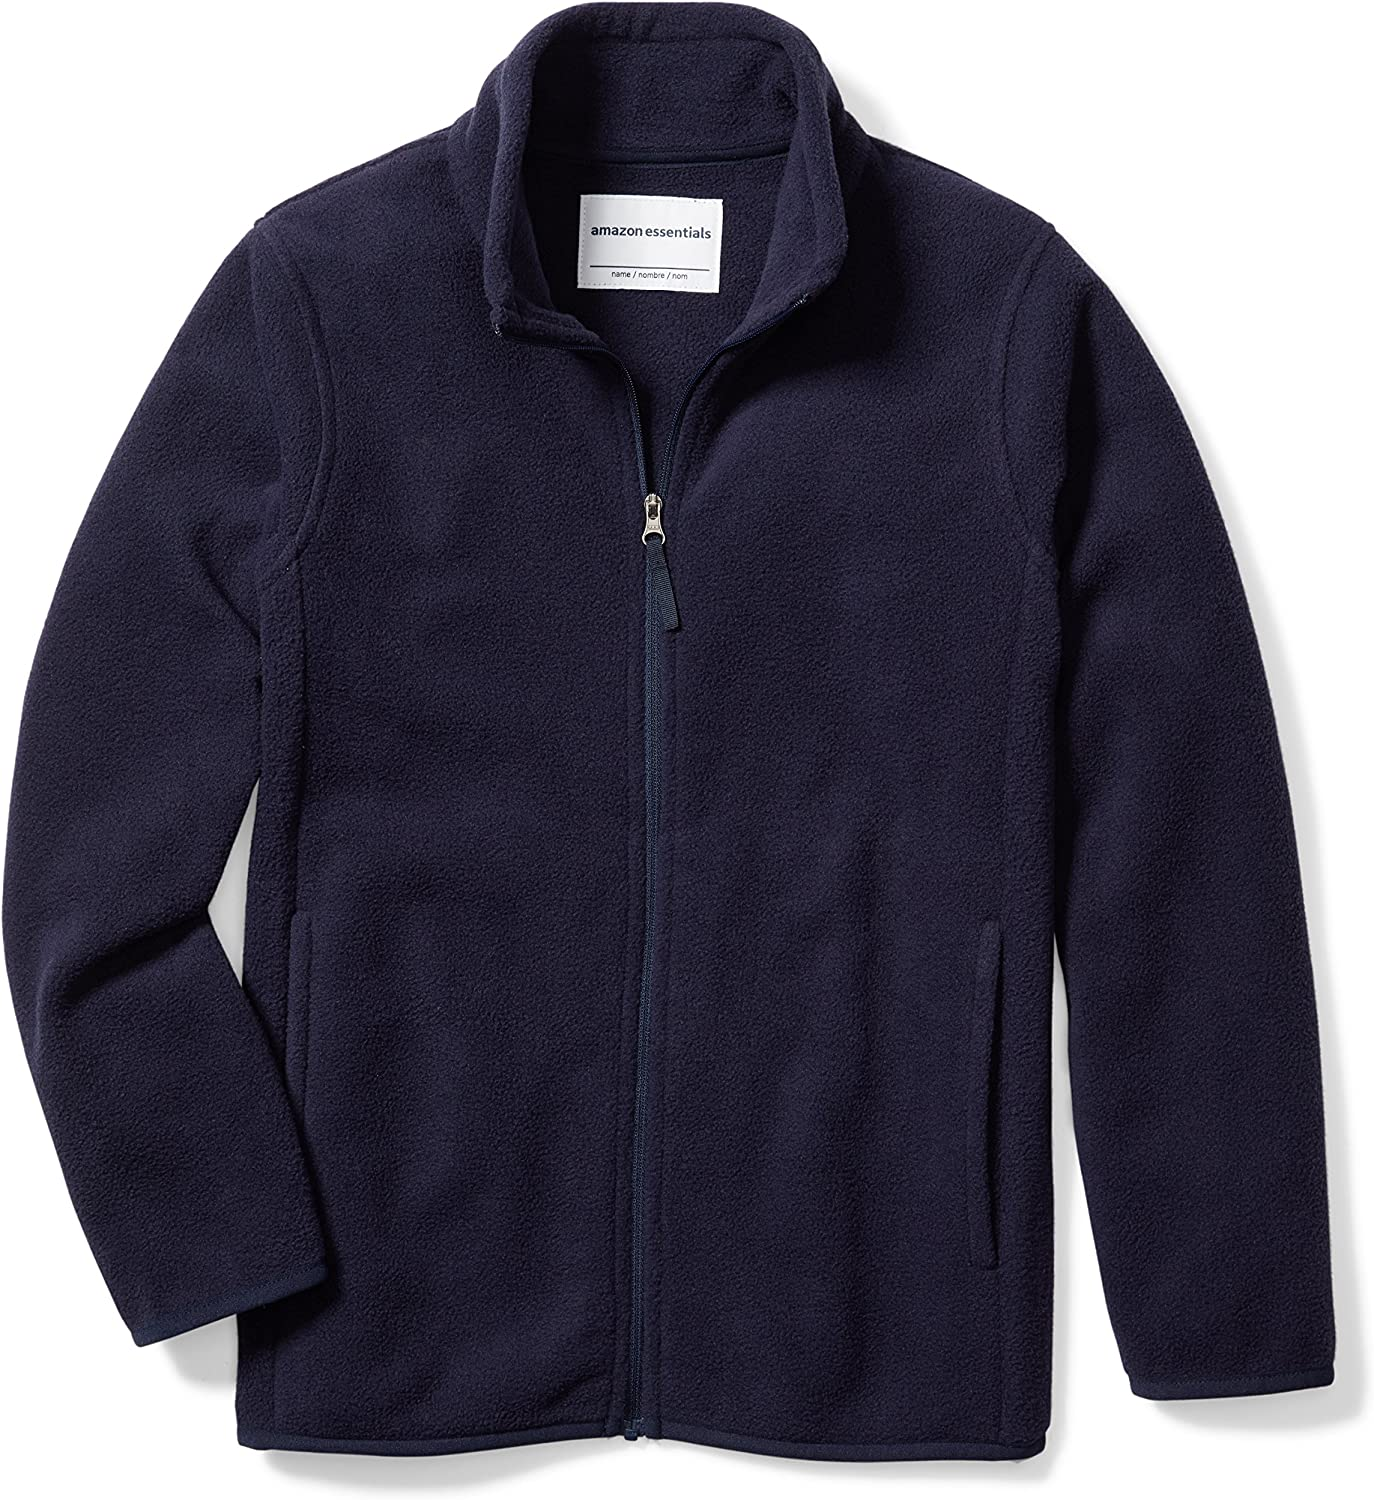 Amazon Essentials Boy's Polar Fleece Full-Zip Jackets